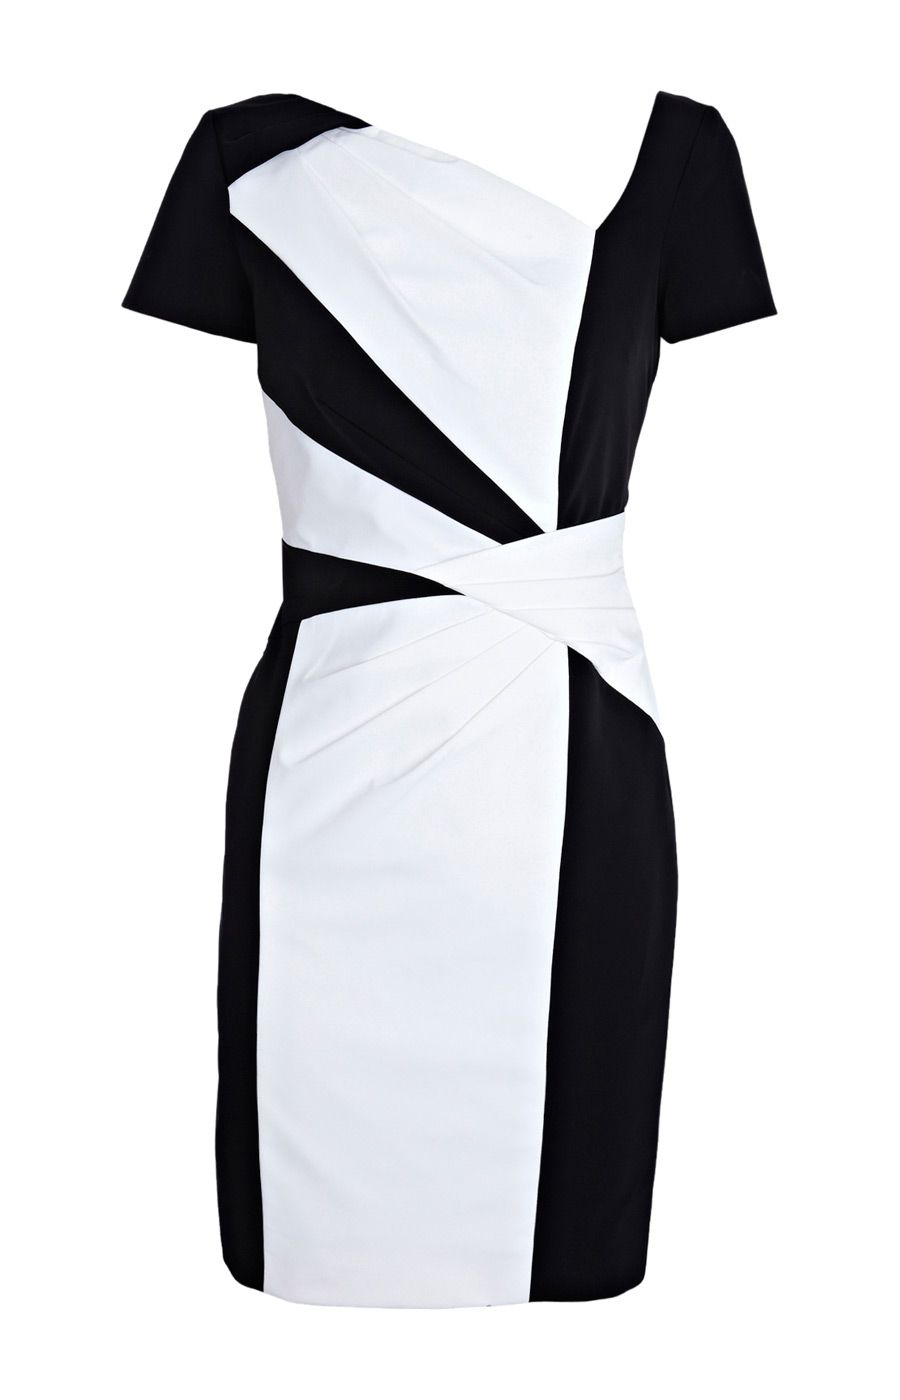 5429f3a89d90 black and white clothing